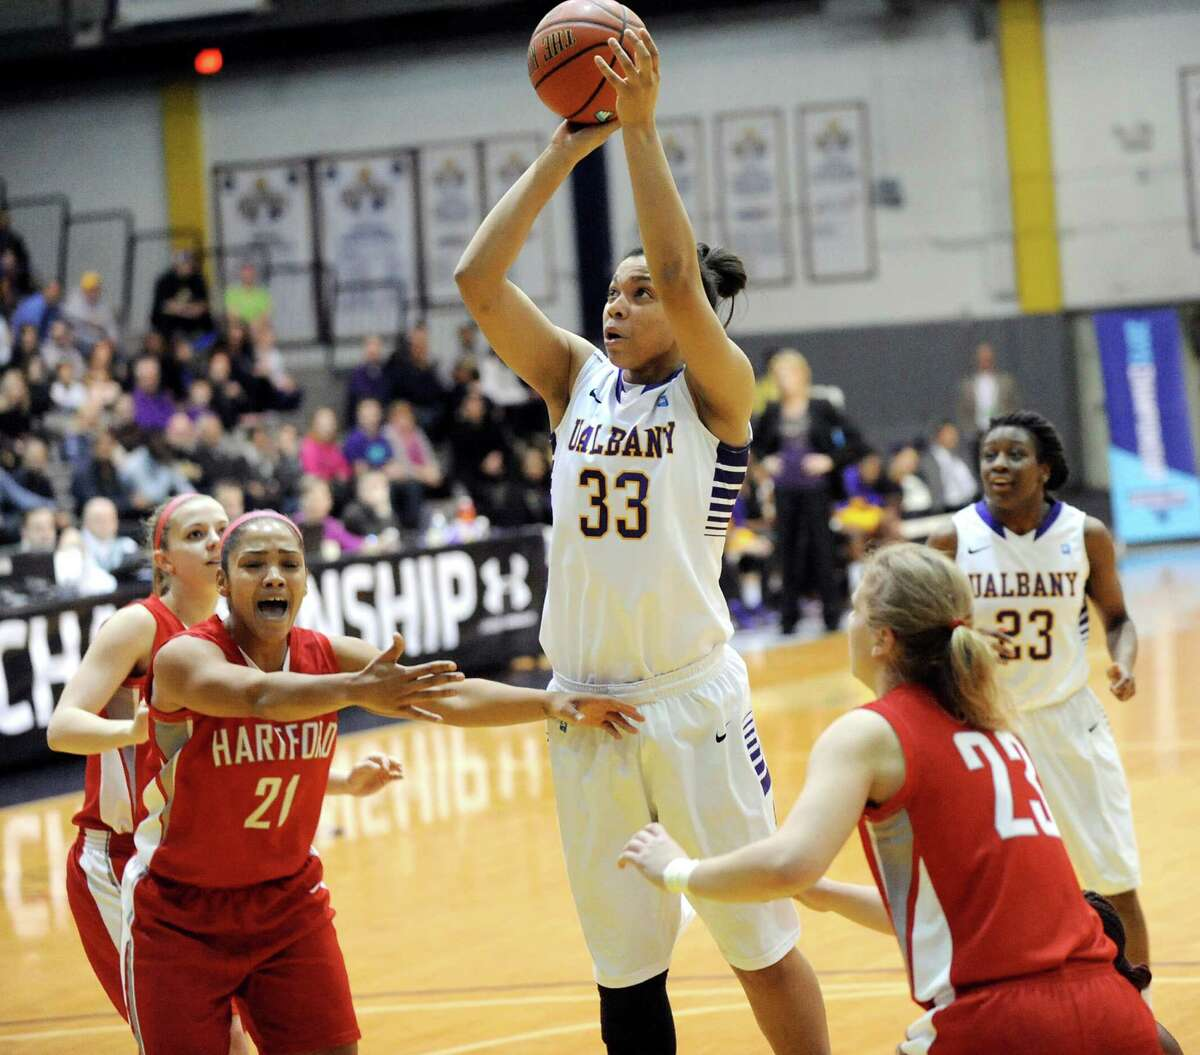 UAlbany's Tiana-Jo Carter, center, goes to the hoop during their America East Championship game against Hartford on Friday, March 13, 2015, at UAlbany in Albany, N.Y. (Cindy Schultz / Times Union)